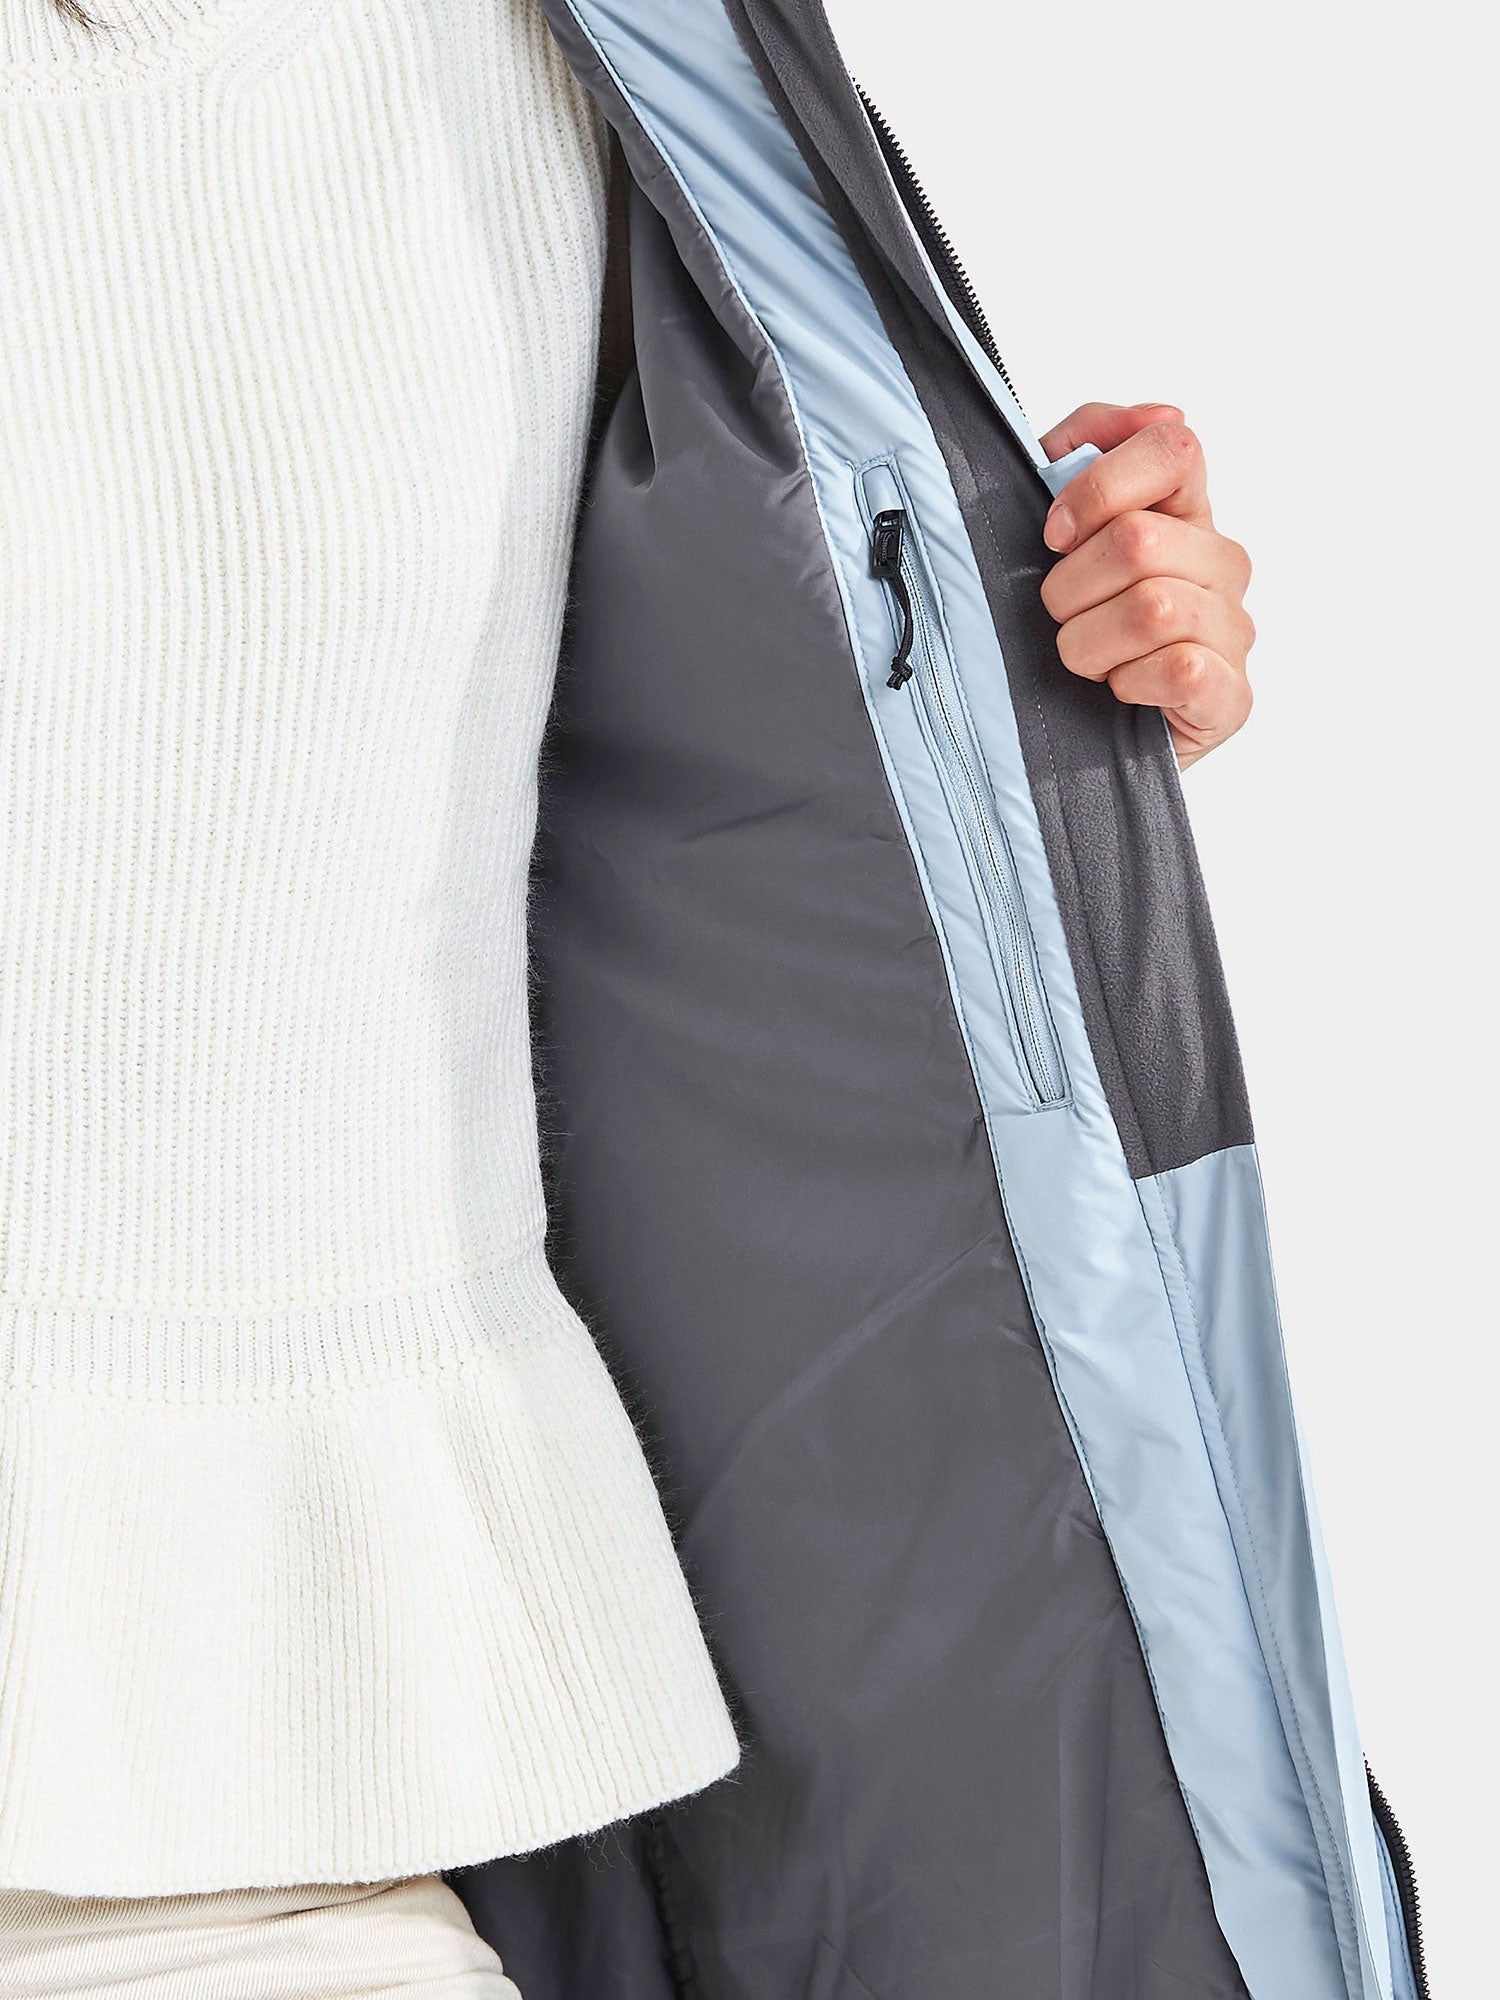 Padded lining with internal pocket